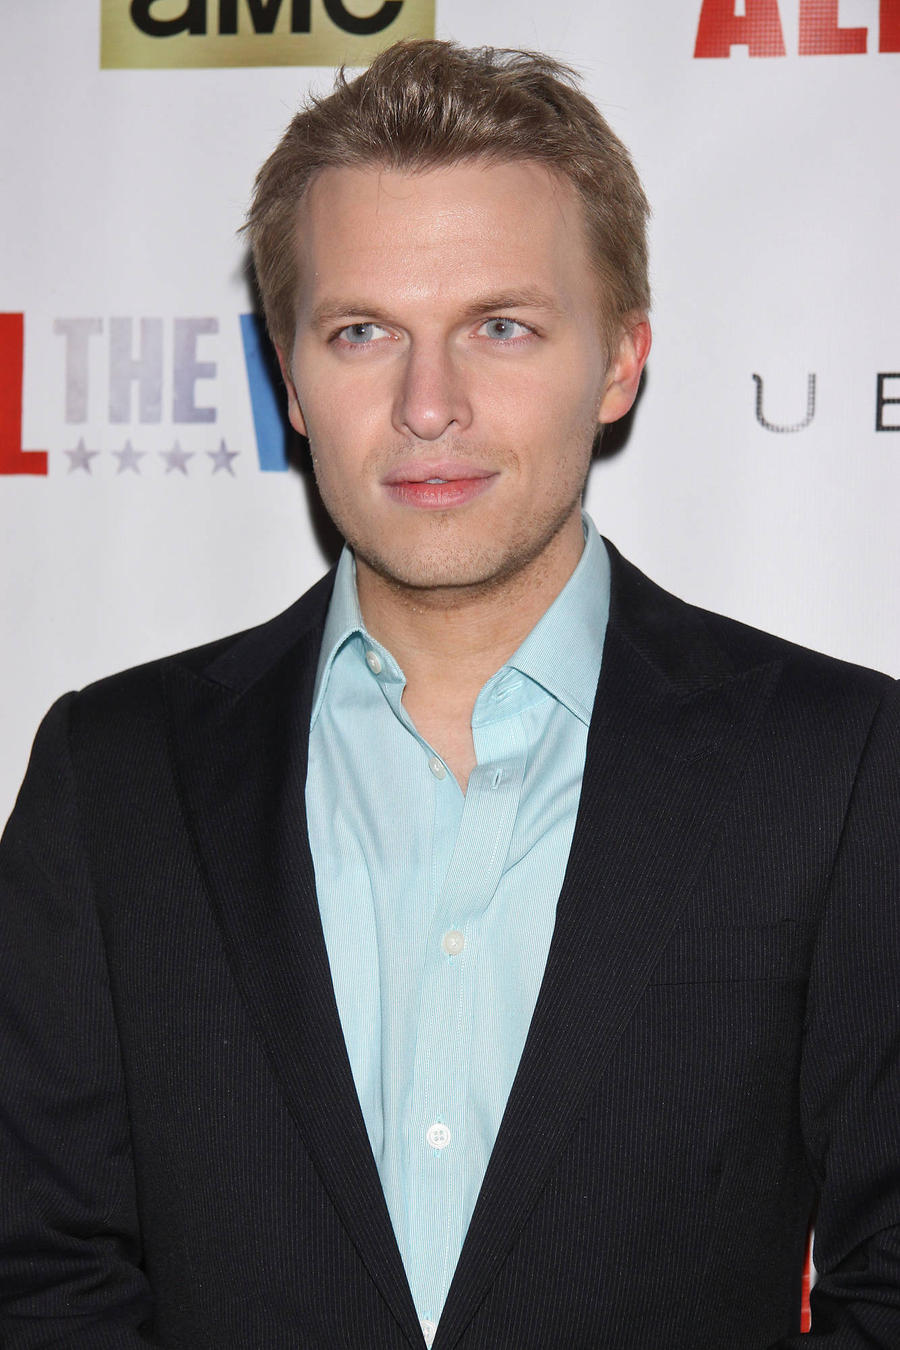 Ronan Farrow: 'I'm Ashamed Of Soft Interview With Cosby Biographer'